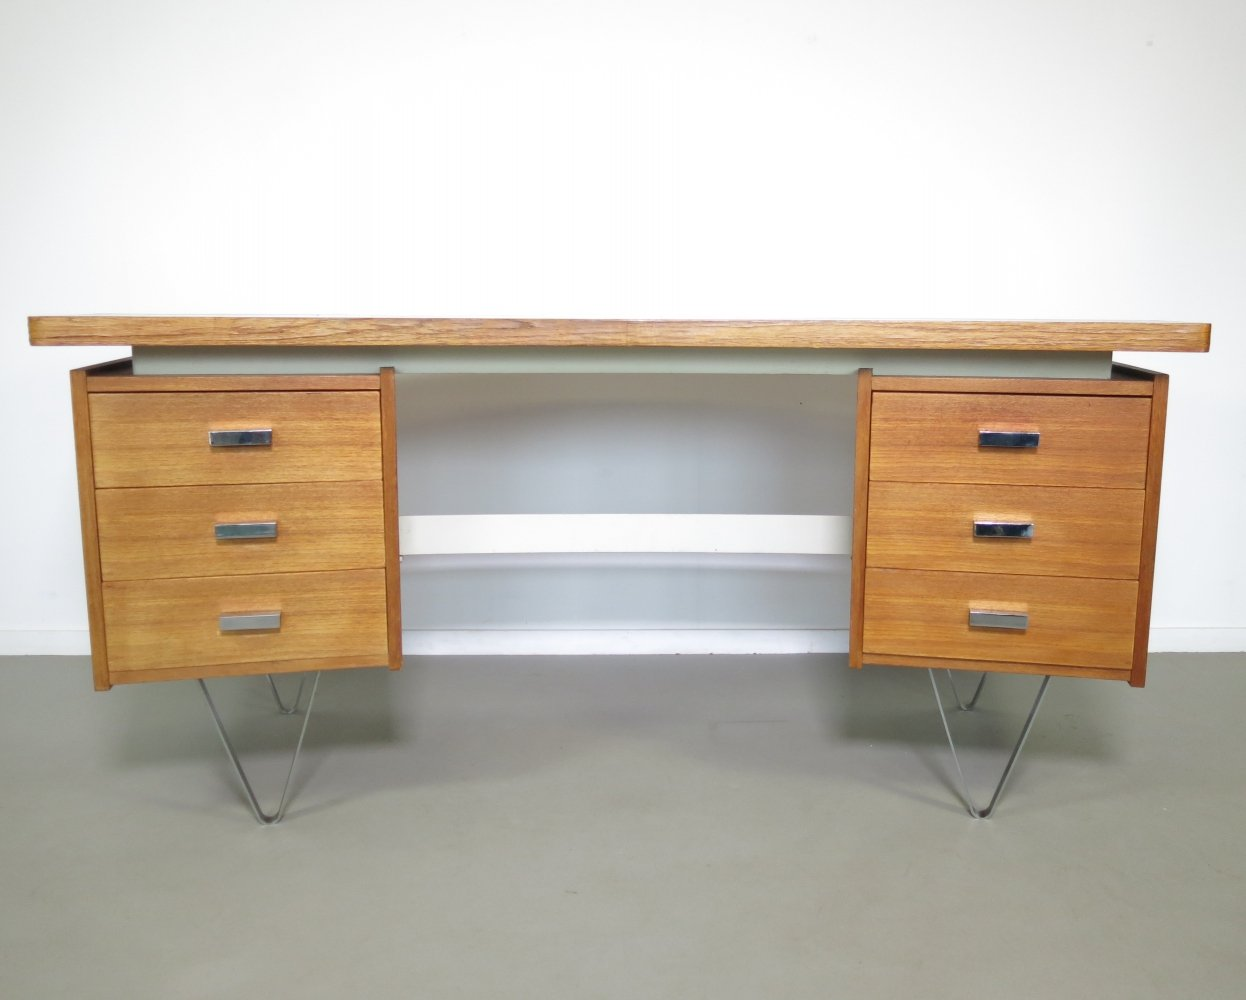 Boomerang writing desk by Cees Braakman for Pastoe, 1960s